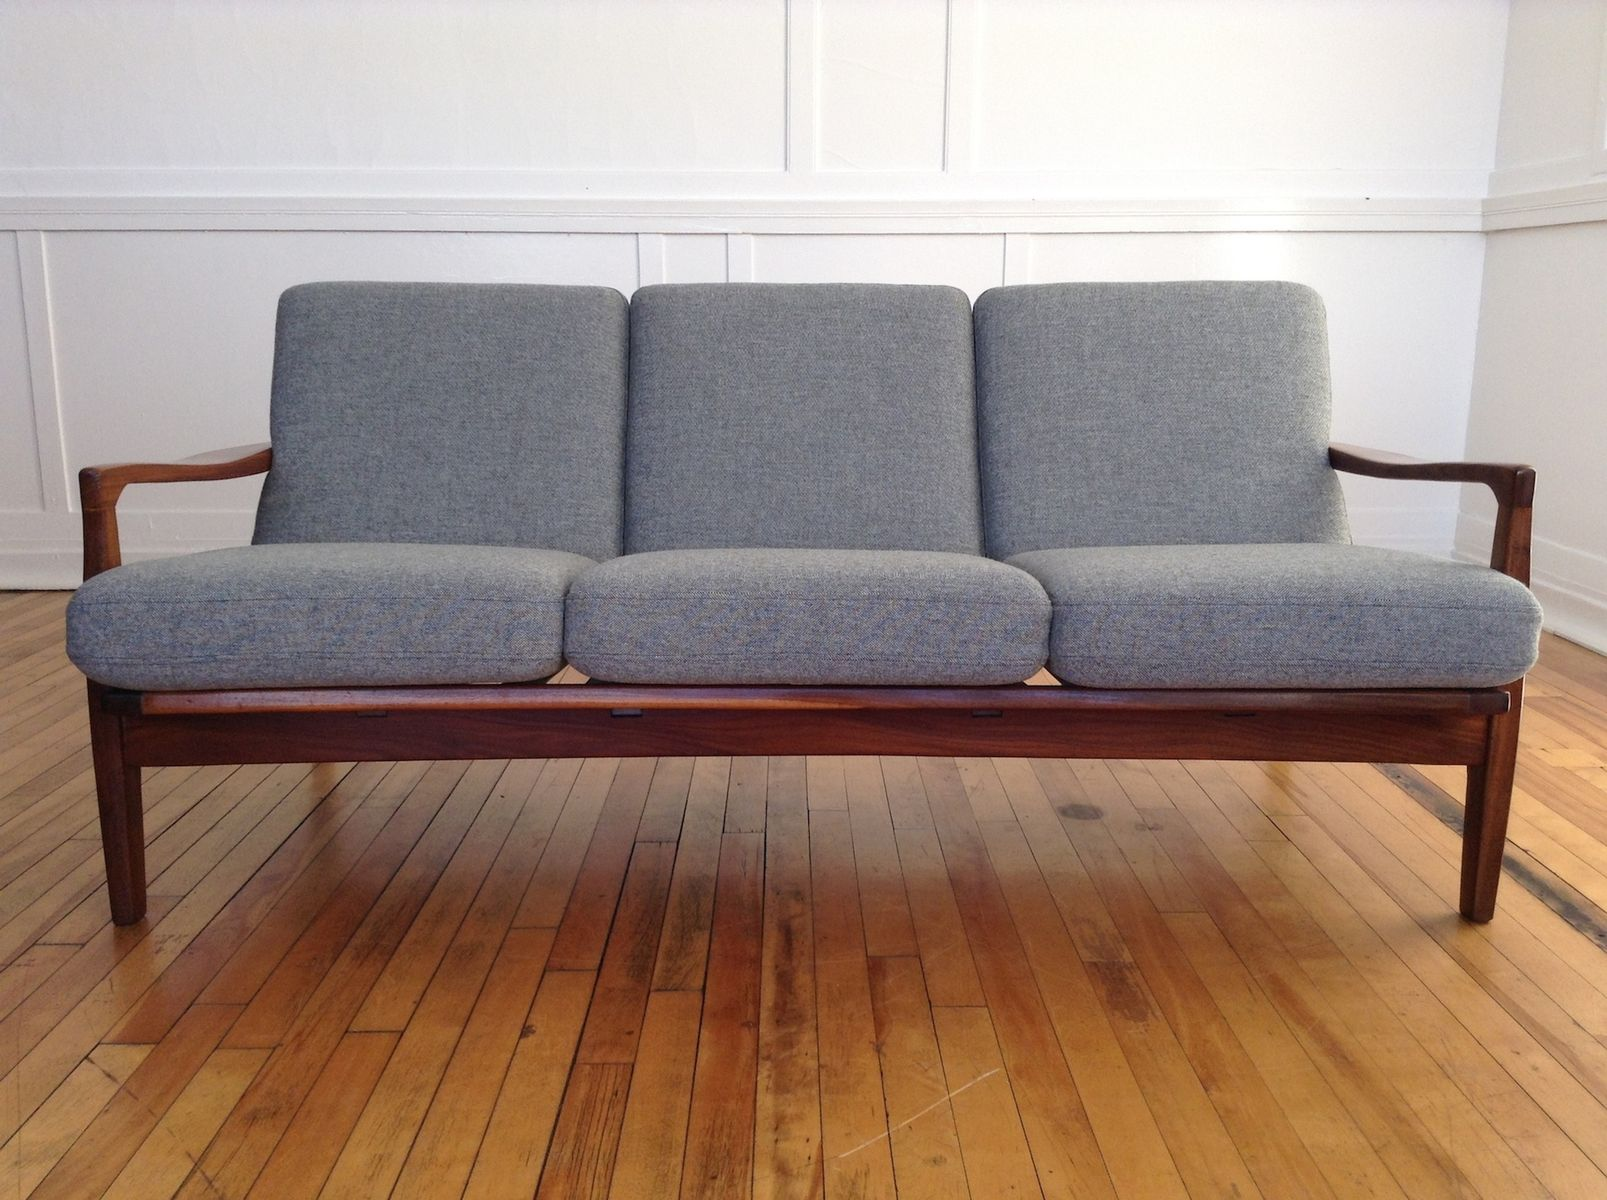 British Mid Century Sofa In Teak And Afromosia From Toothill 1960s For Sale At Pamono